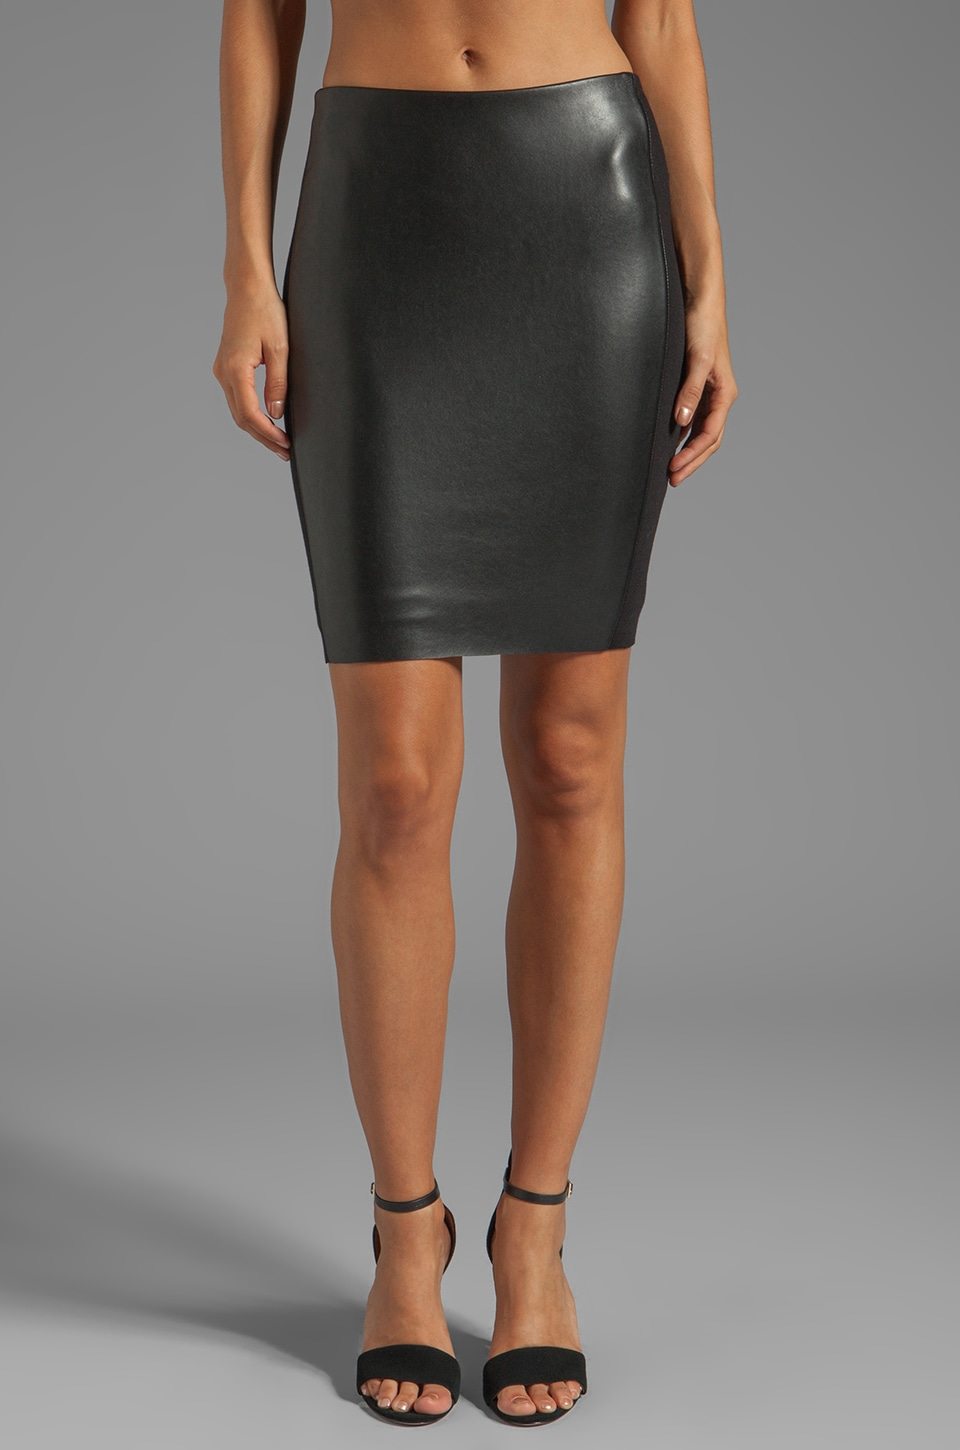 Bailey 44 She Walks in Beauty Leather Pencil Skirt in Black